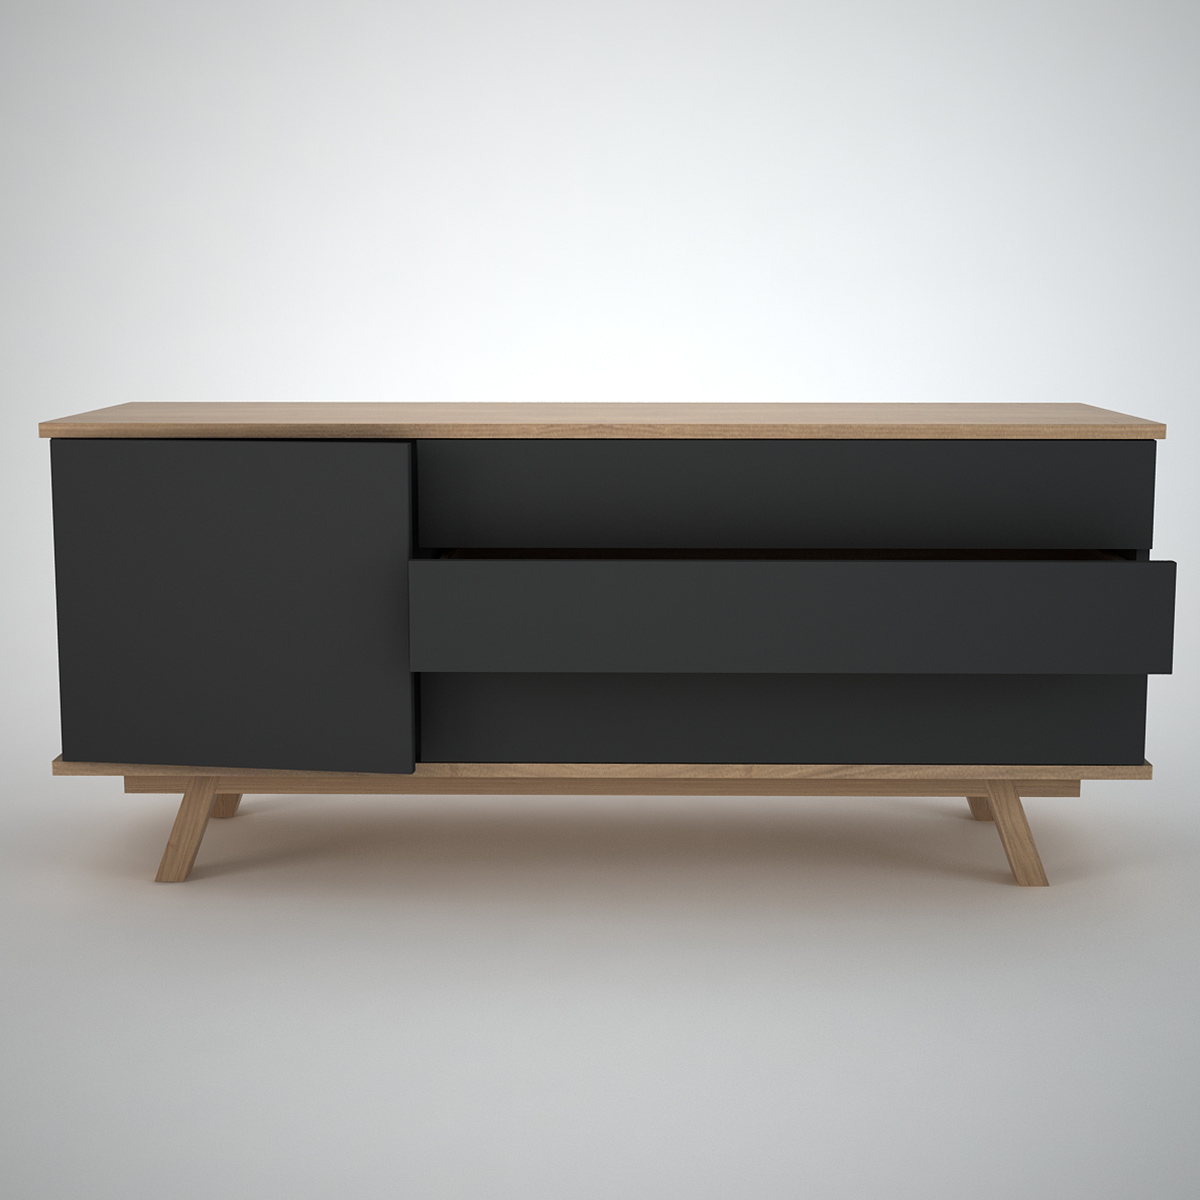 ottawa sideboard 1 3 anthracite join furniture. Black Bedroom Furniture Sets. Home Design Ideas